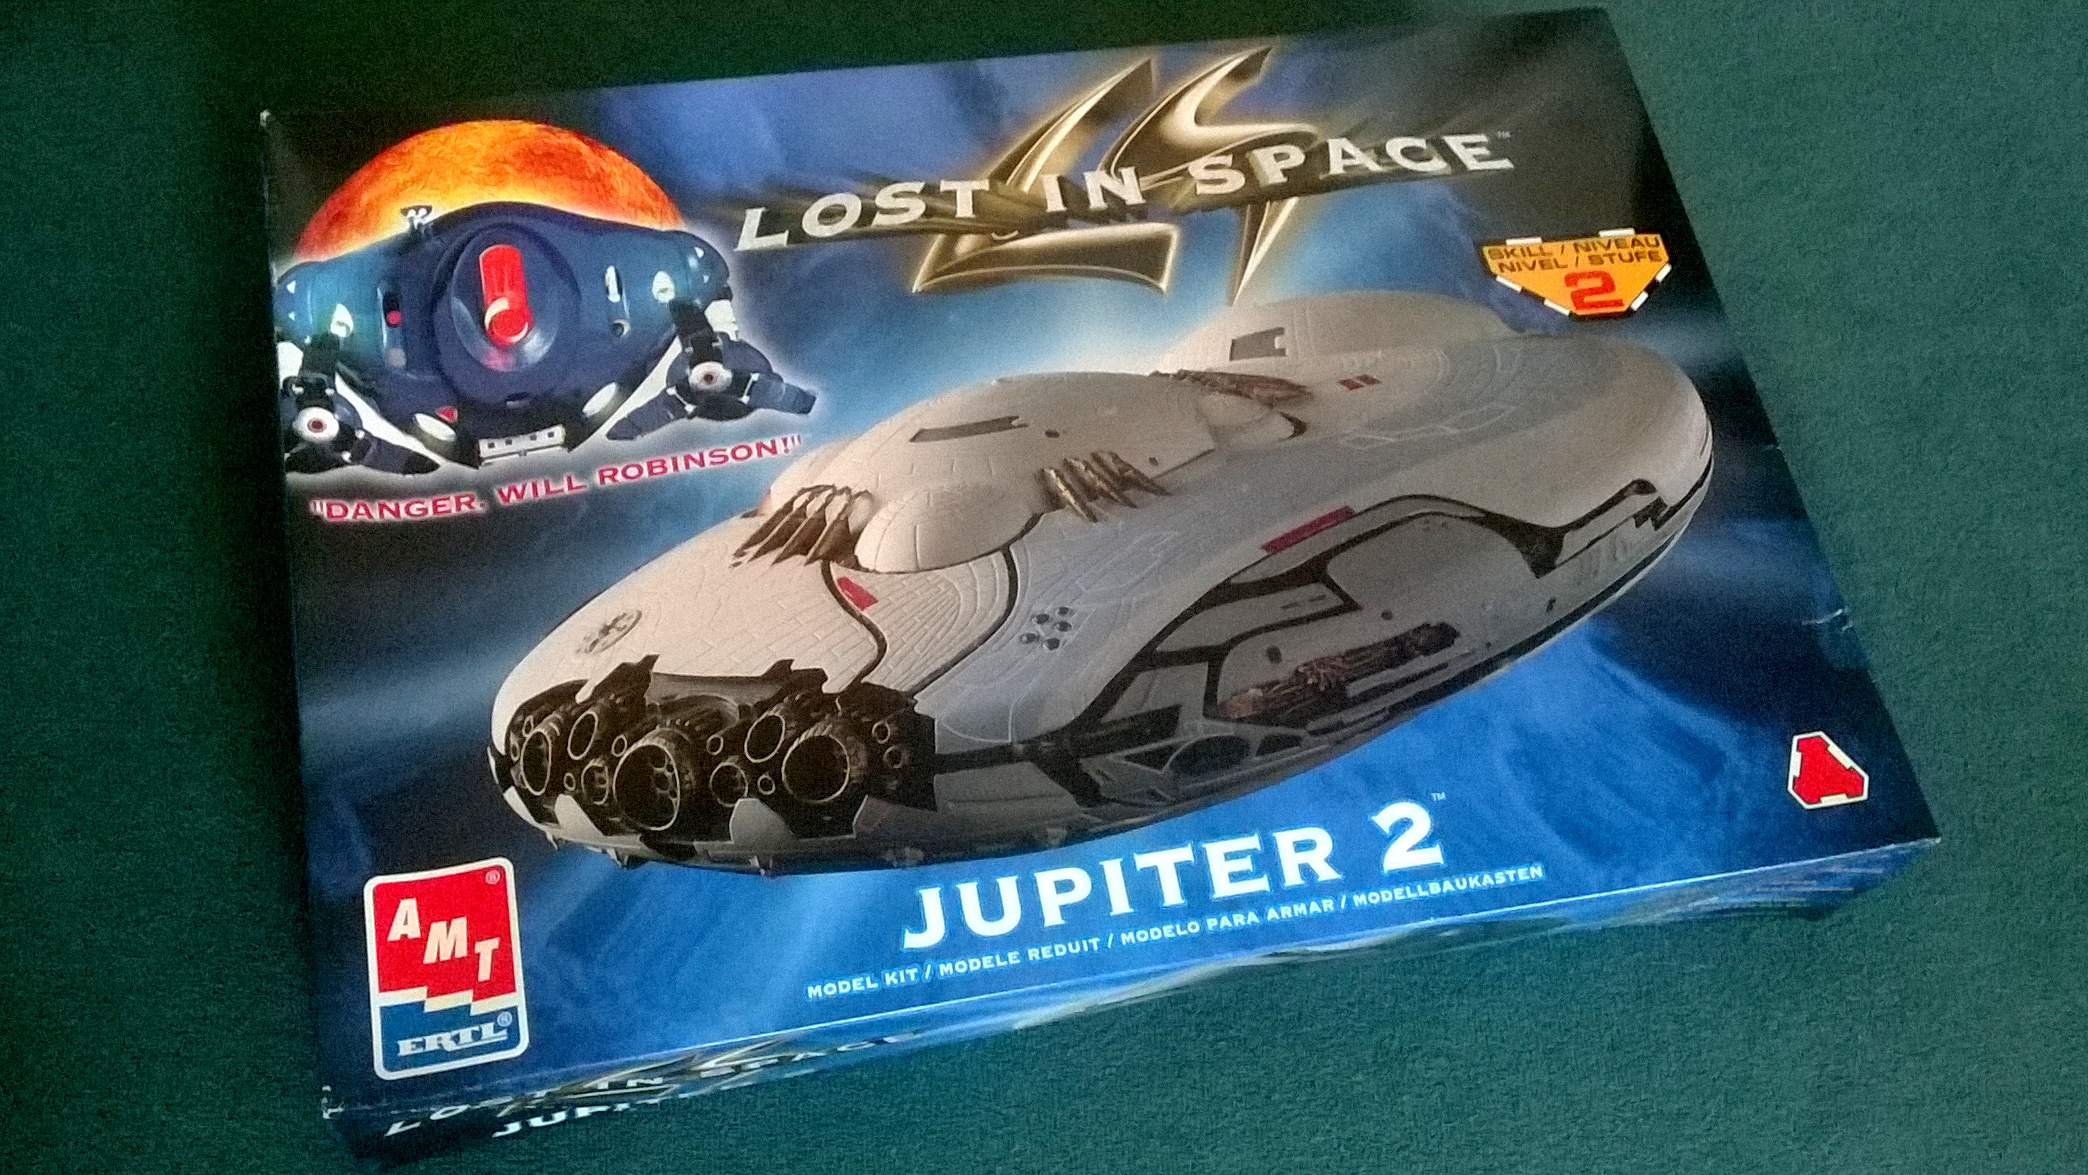 Lost in space: Jupiter 2 / 1:350 / AMT Ertl